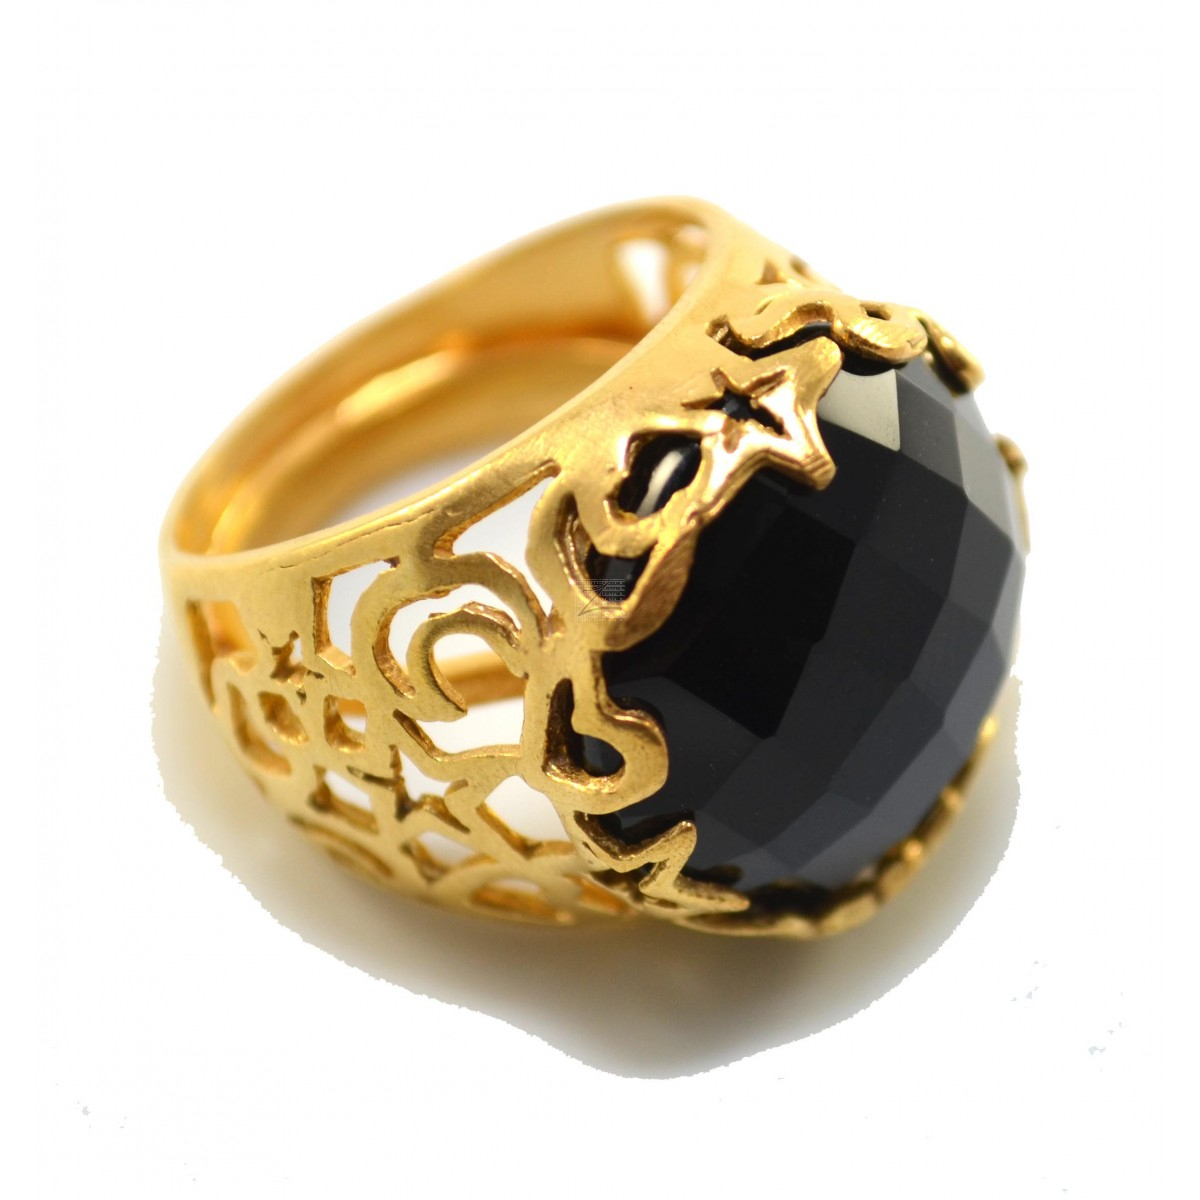 Black Multifaceted Onyx Stone Cocktail Ring With 24K Gold Plated Pertaining To Most Popular Multifaceted Rings (View 6 of 25)